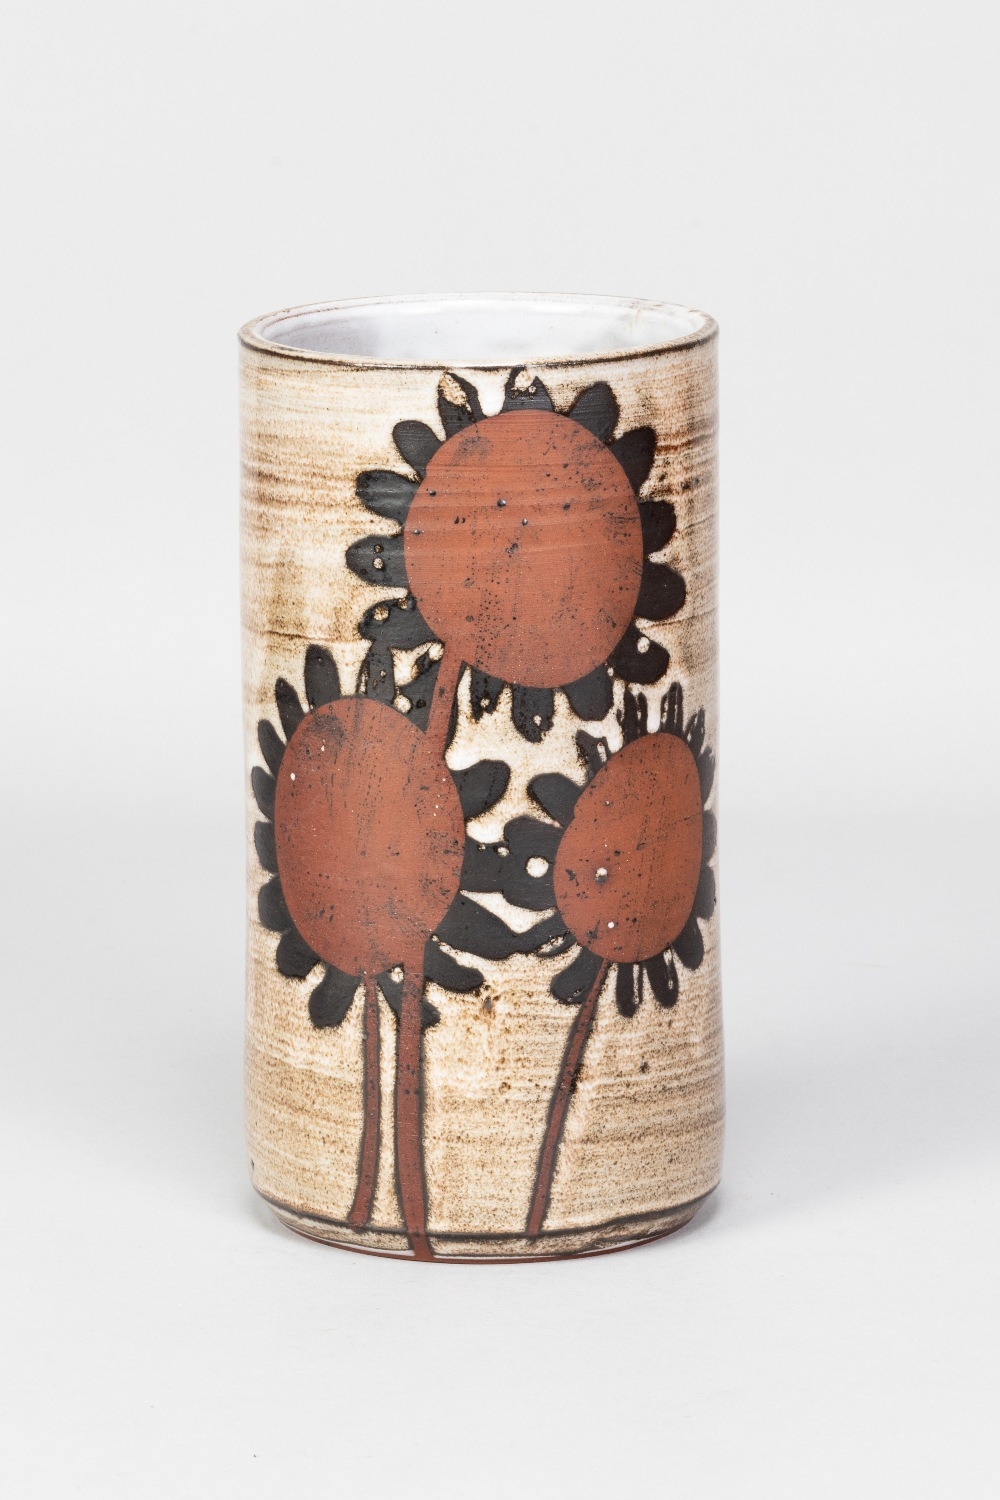 Briglin Pottery; a tall cylindrical tin glazed earthenware vase with sunflower decoration, impressed